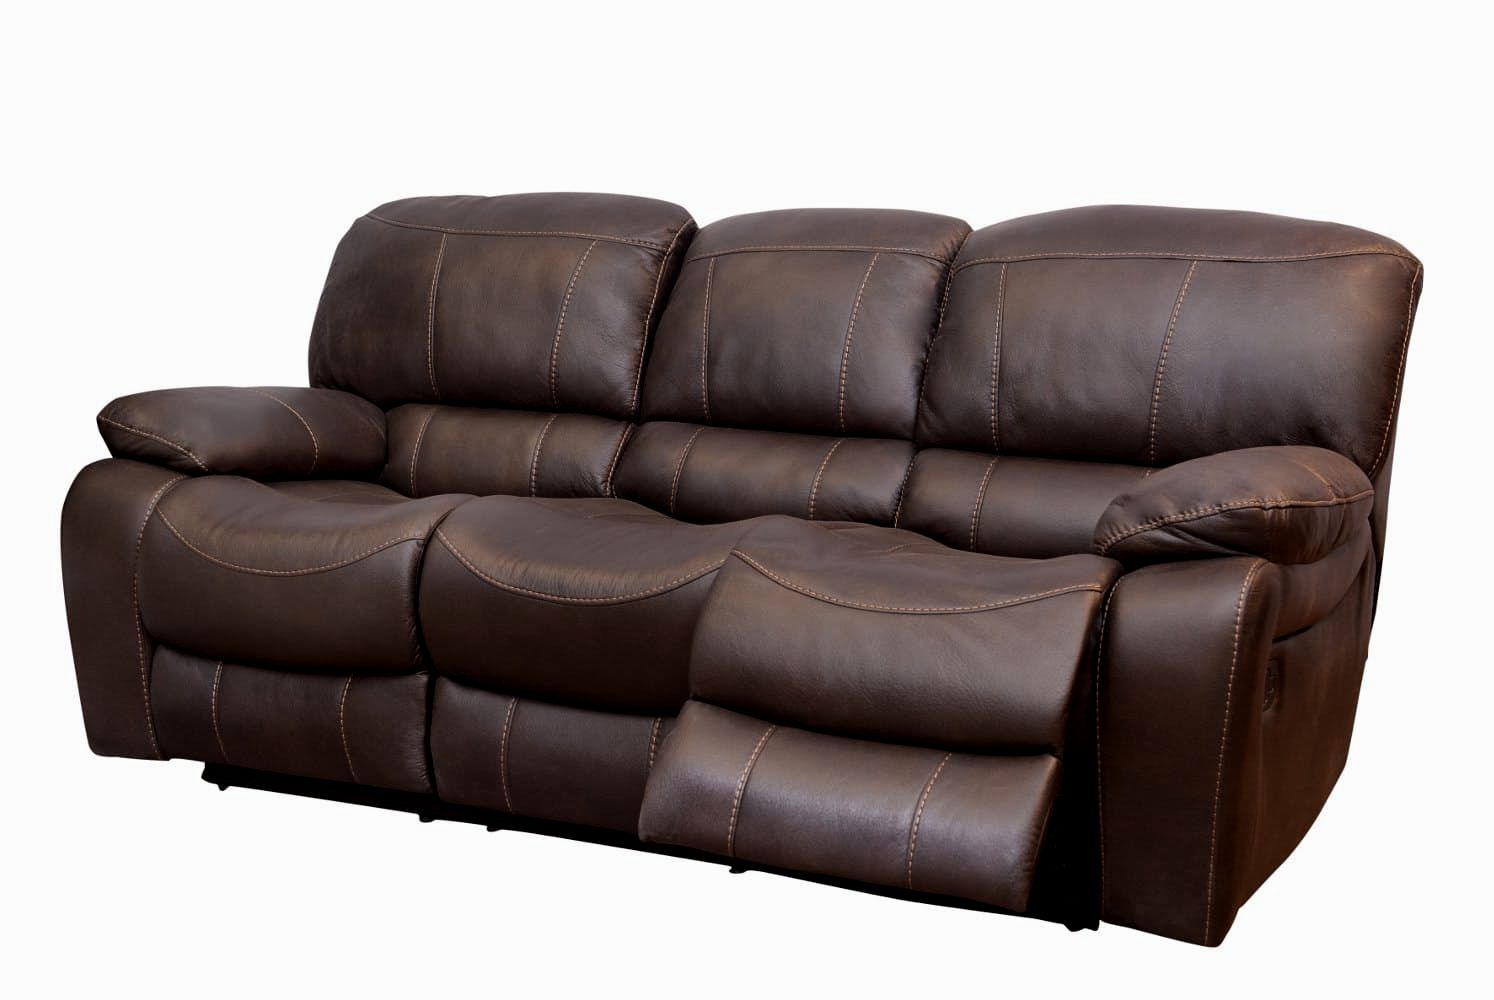 cool recliner sofa covers image-Awesome Recliner sofa Covers Picture